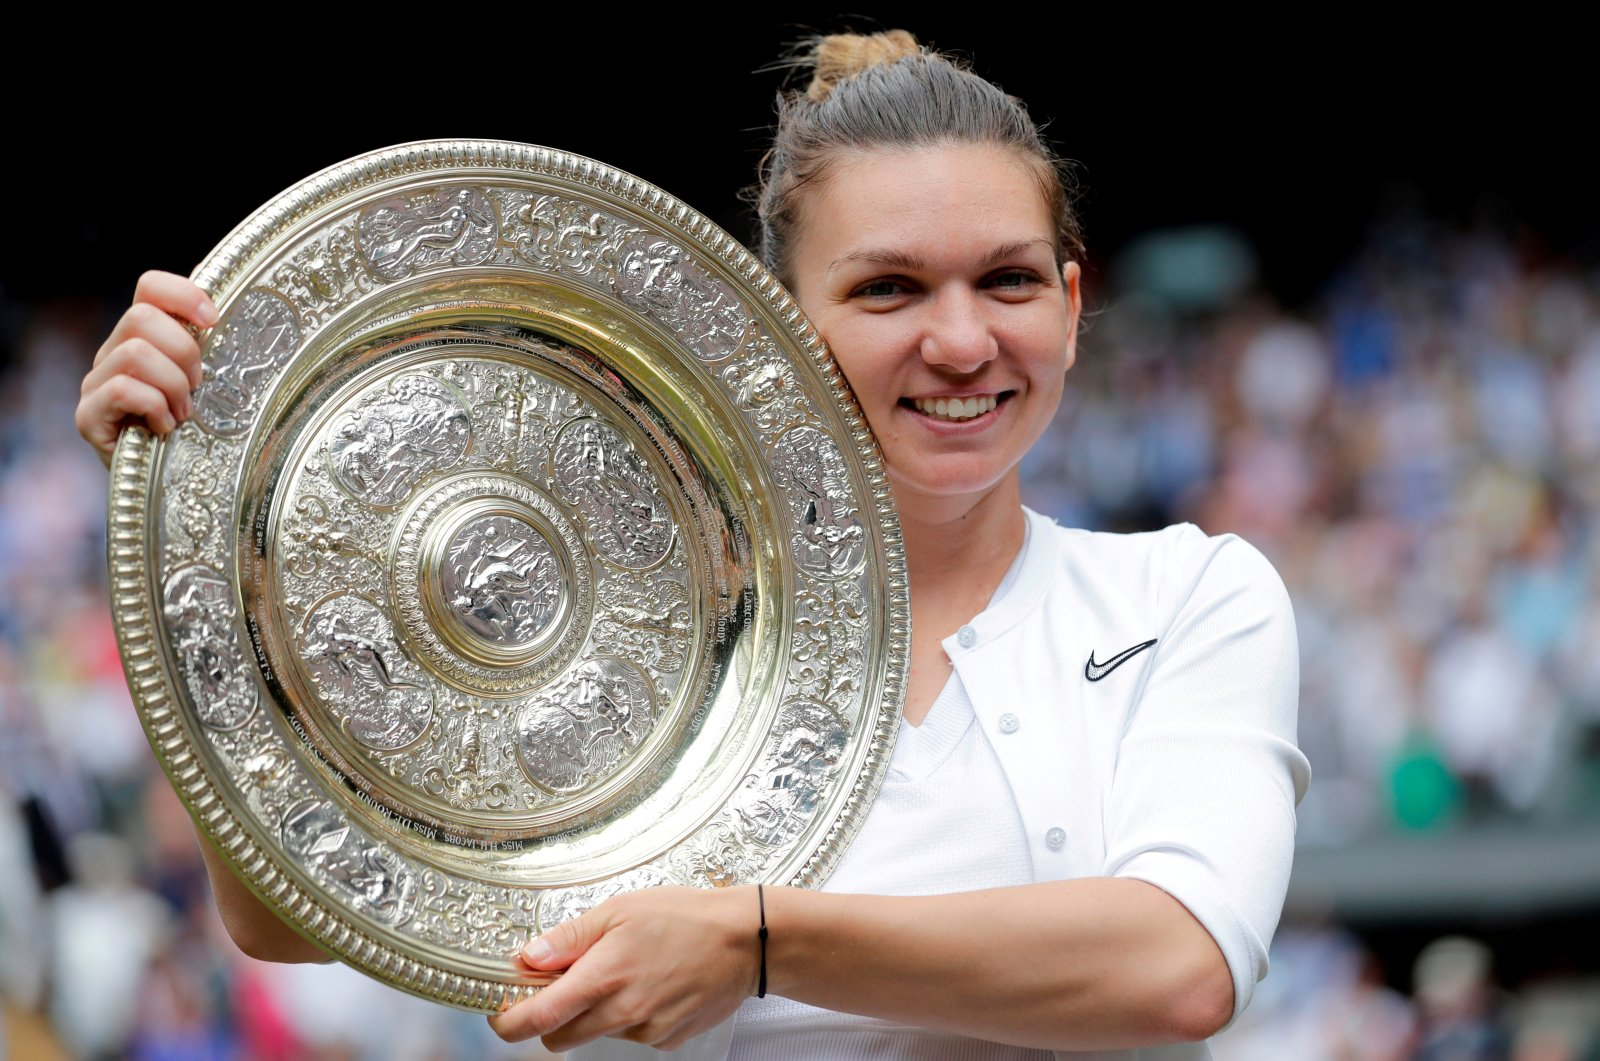 Romania's Simona Halep poses with the trophy after winning the Wimbledon women's singles final against Serena Williams, London, England, July 13, 2019. (Reuters Photo)